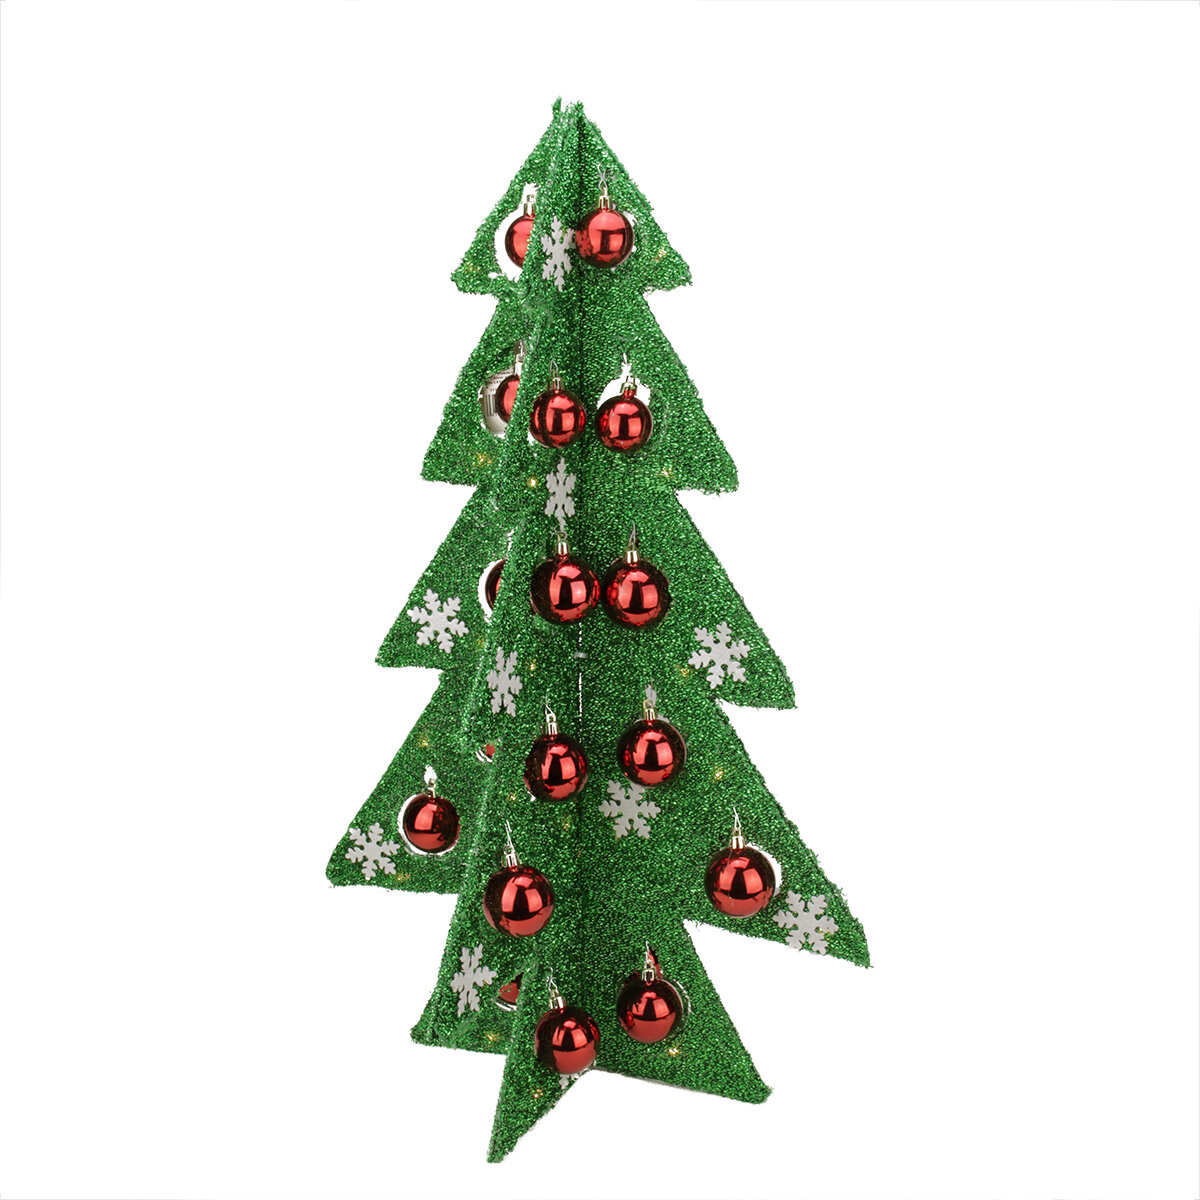 northlight battery operated decorated tinsel led lighted christmas tree table top decoration wayfair - Battery Lighted Christmas Decorations